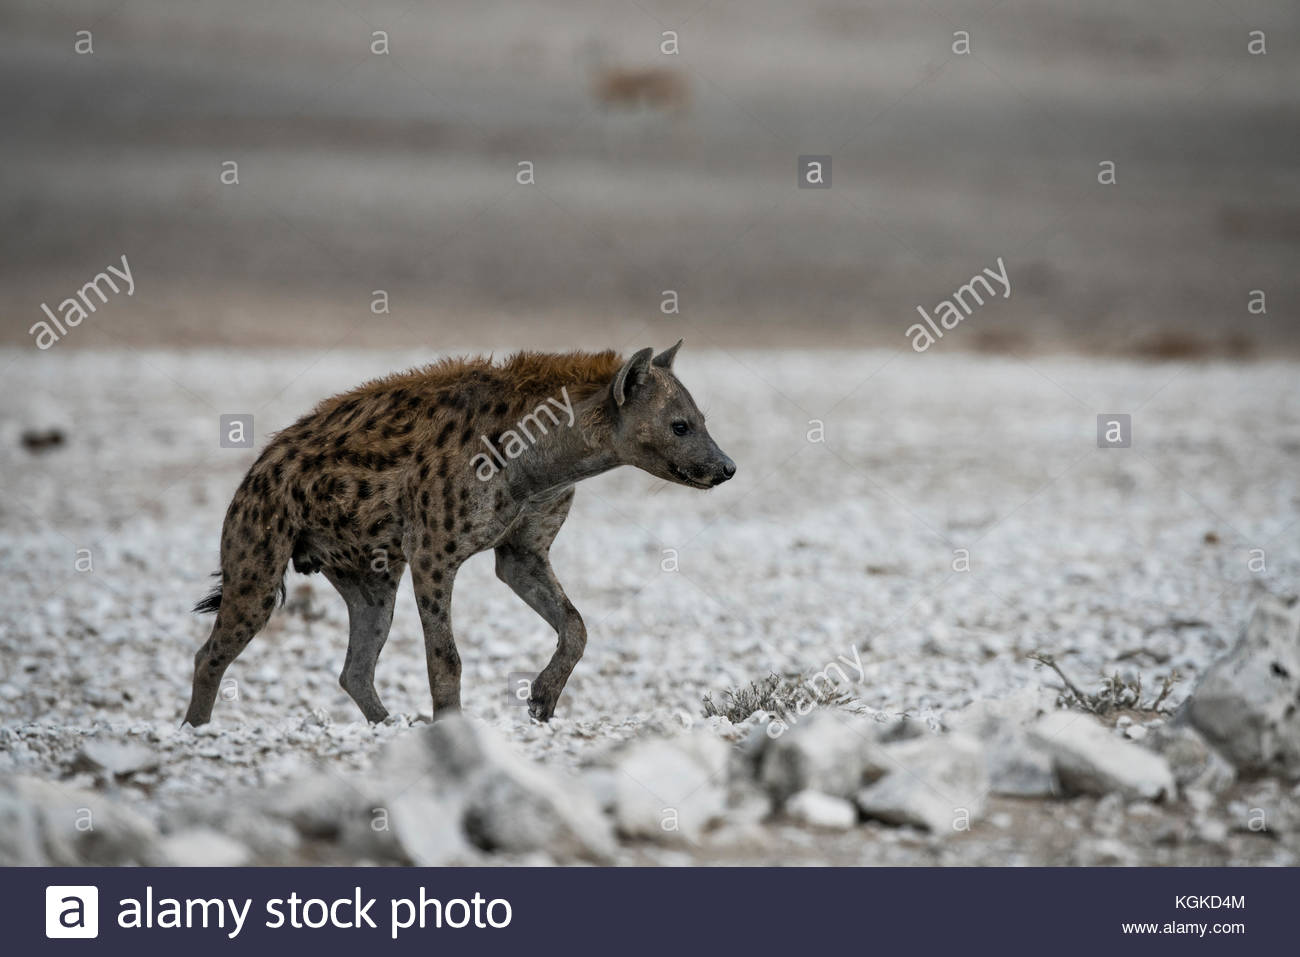 A spotted hyenas, Crocuta crocuta, walking in the dry plain of the Etosha National Park. - Stock Image